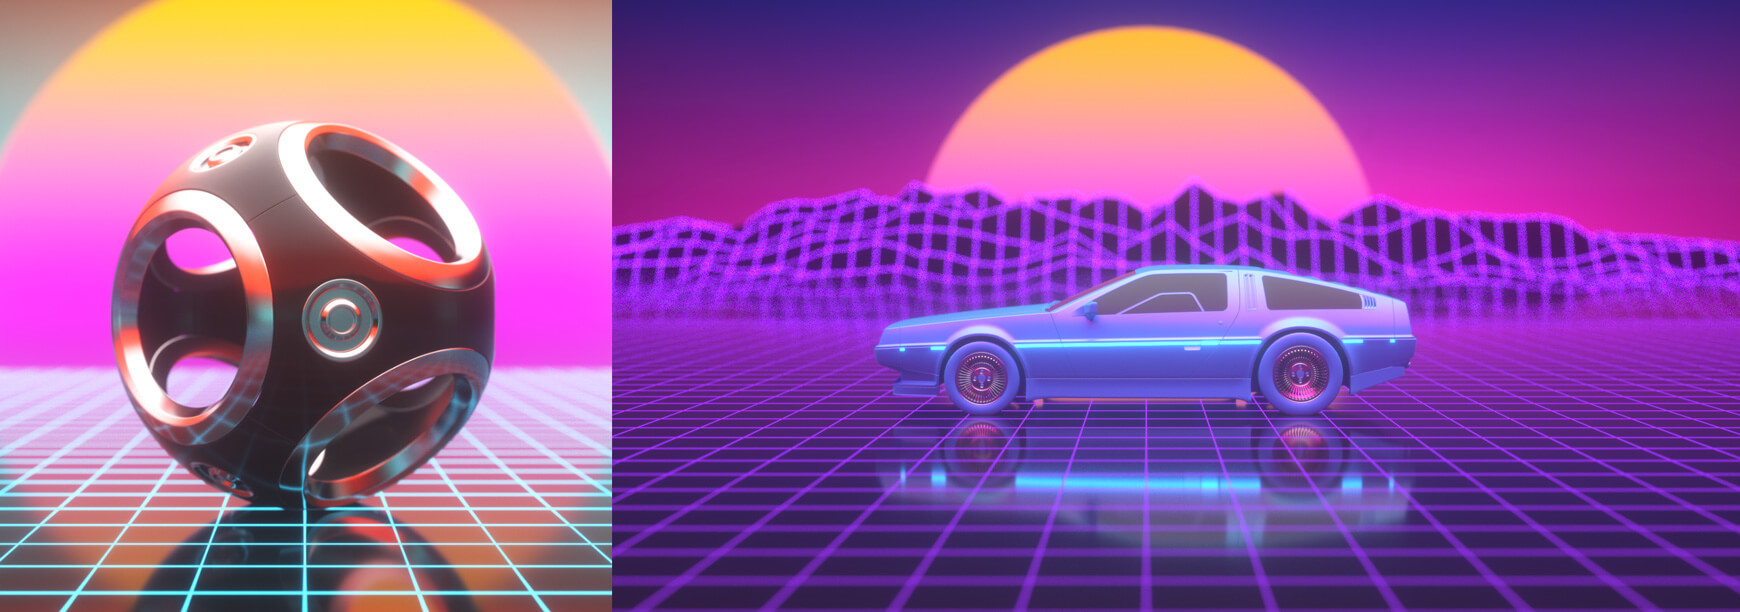 Octane Lighting Essentials Volume 2 Cinema 4D Retro Glow